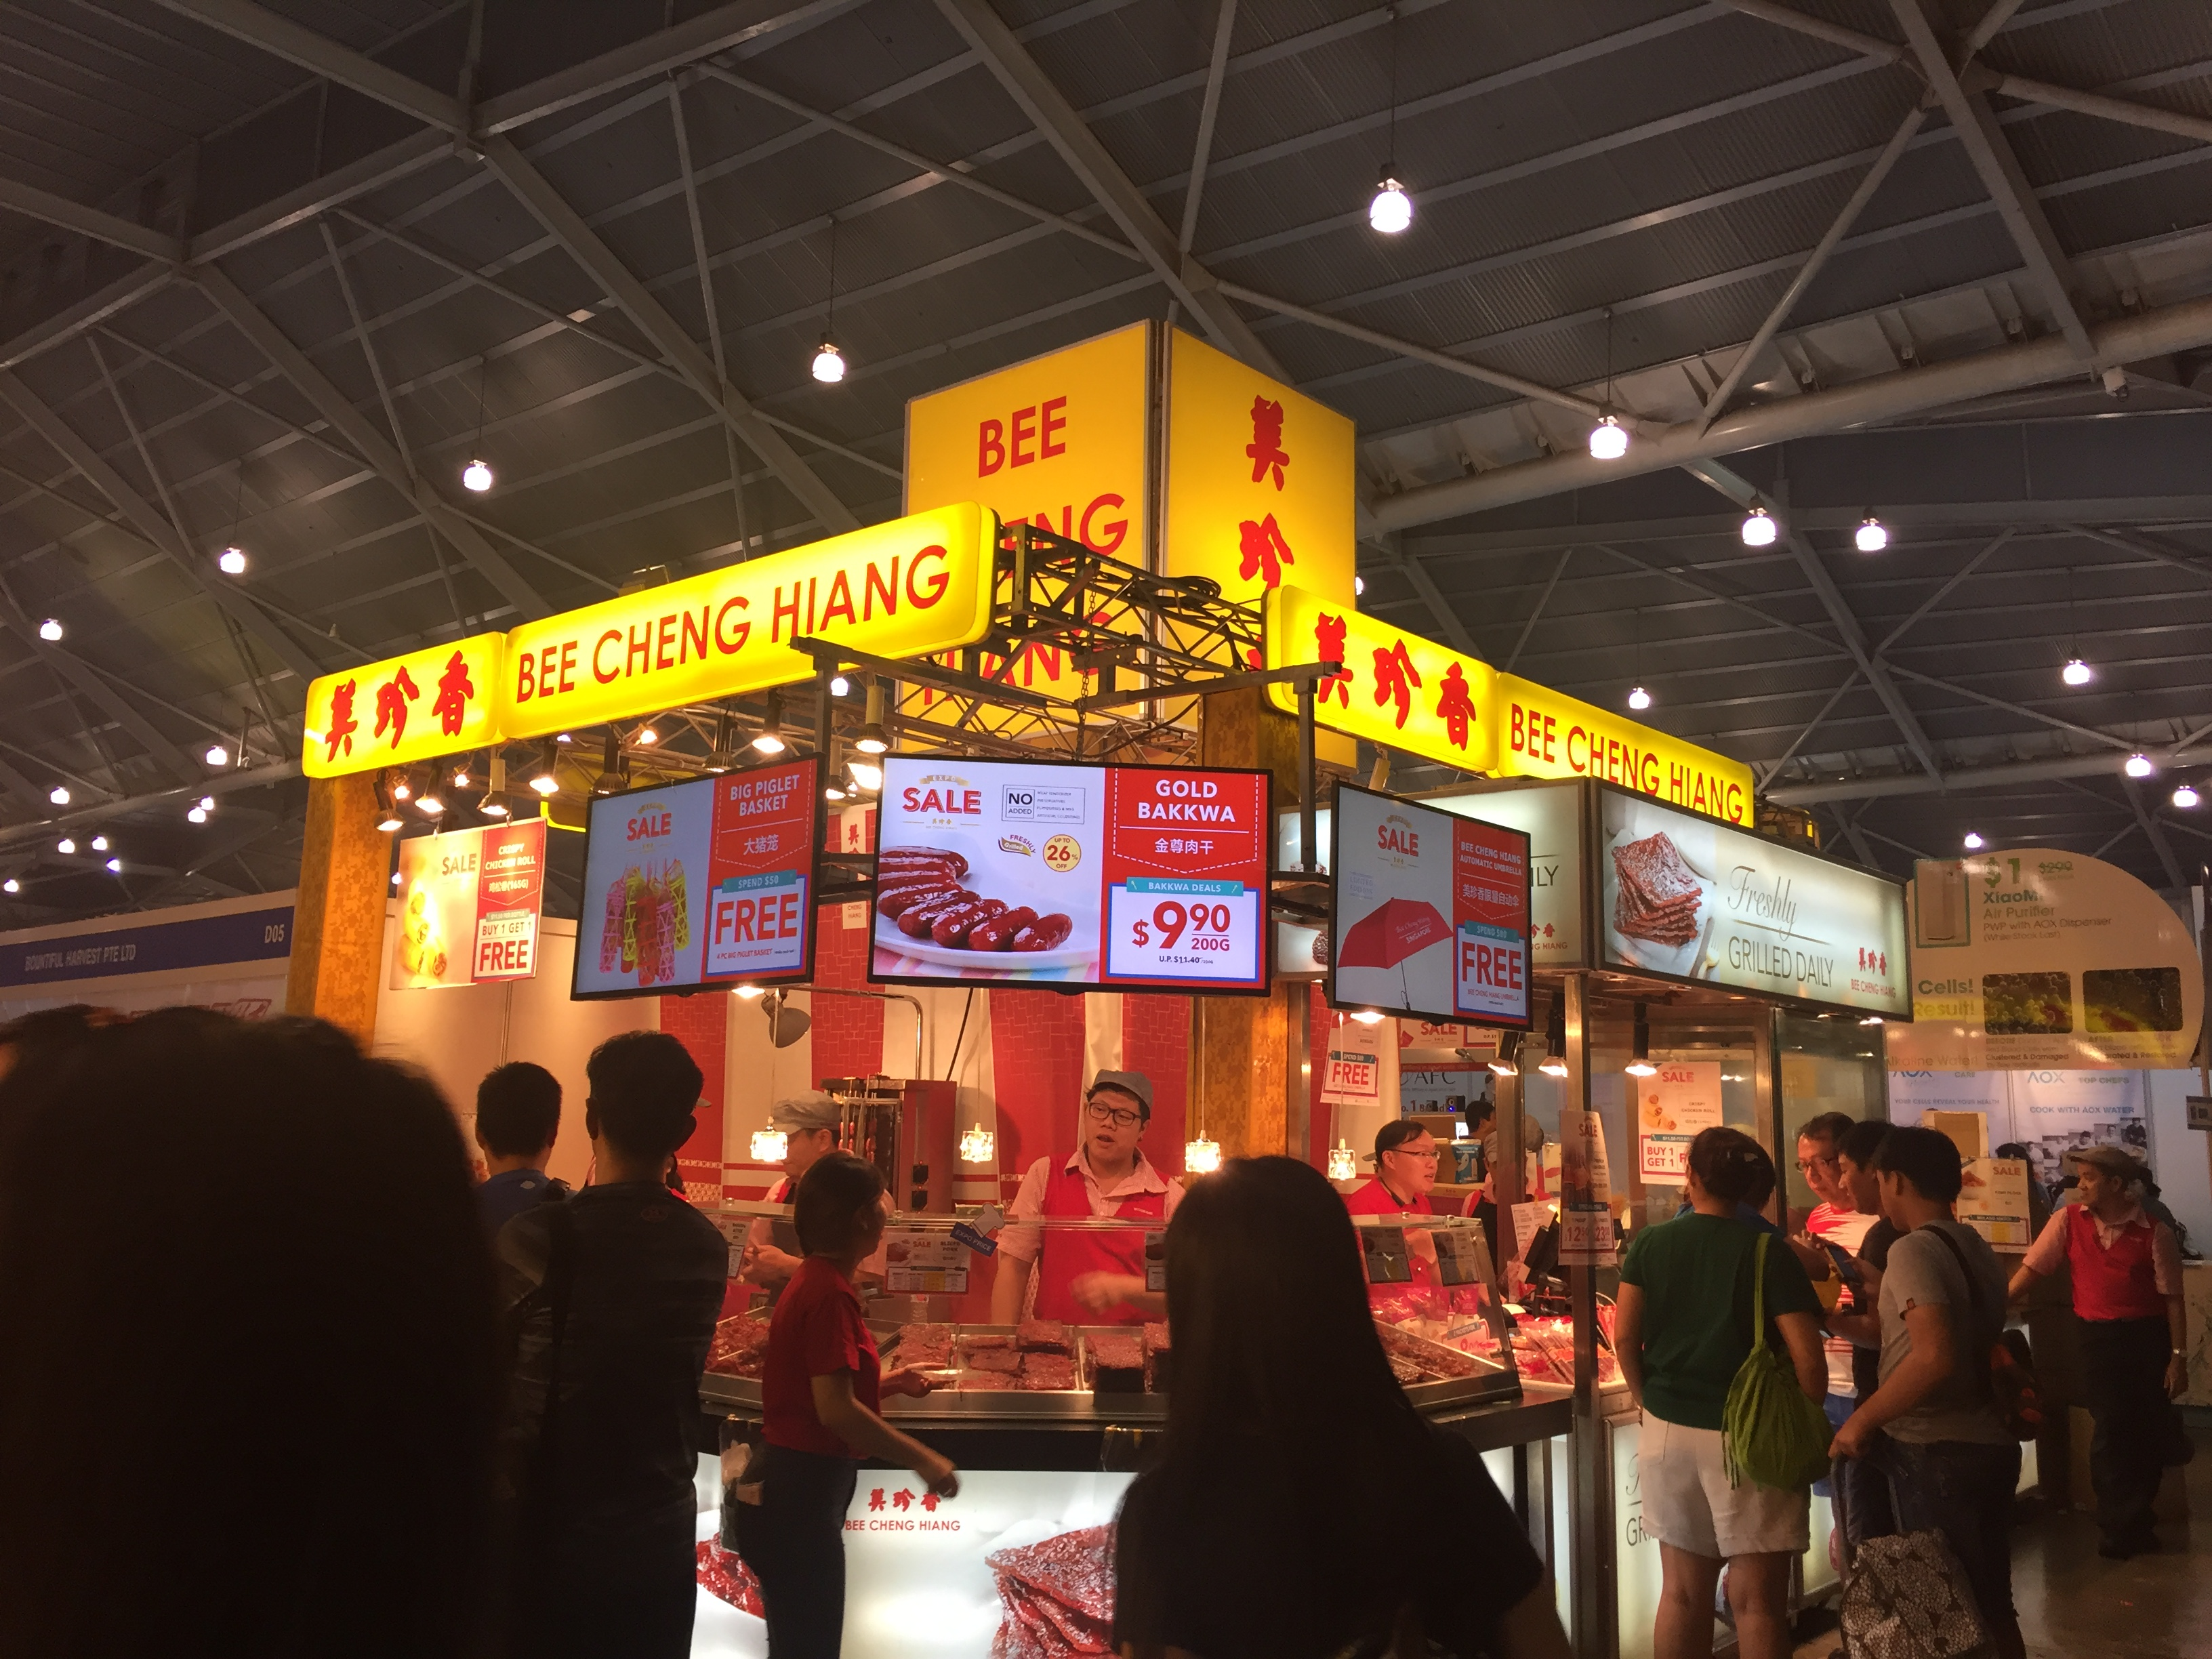 Bee Cheng Hiang is the first booth we see.